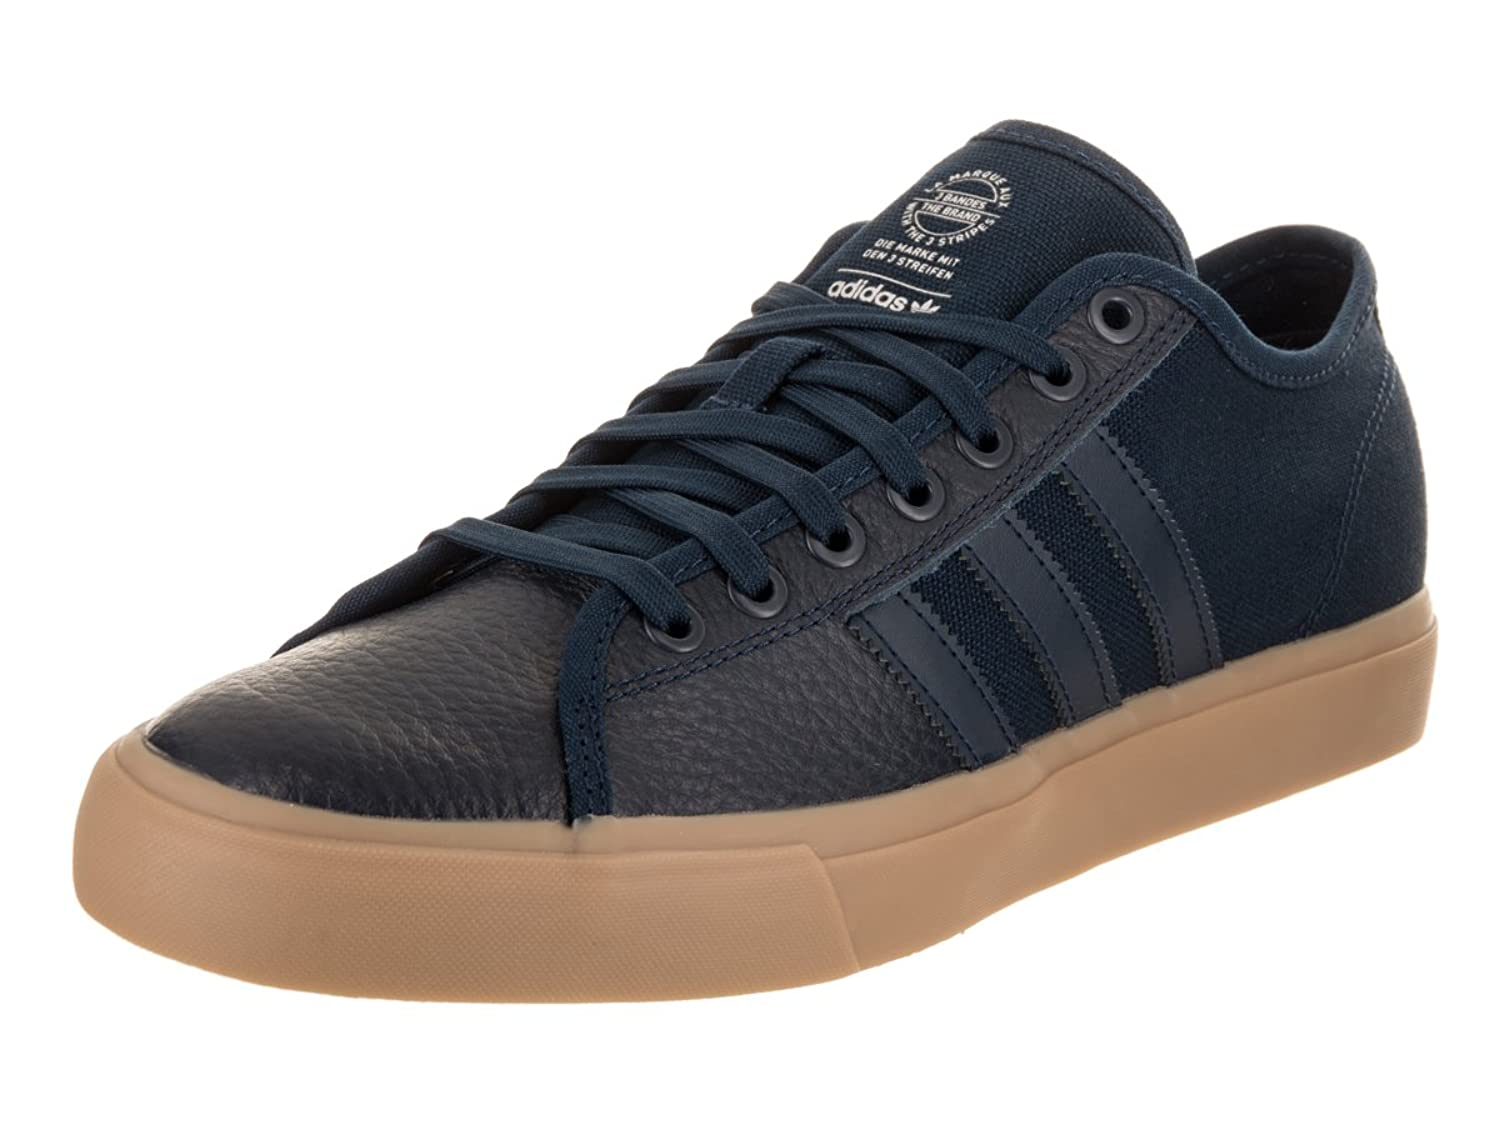 best website e25b0 c6355 adidas Men s Matchcourt RX Conavy Gum4 Silvmt Skate Shoe 8 Men US